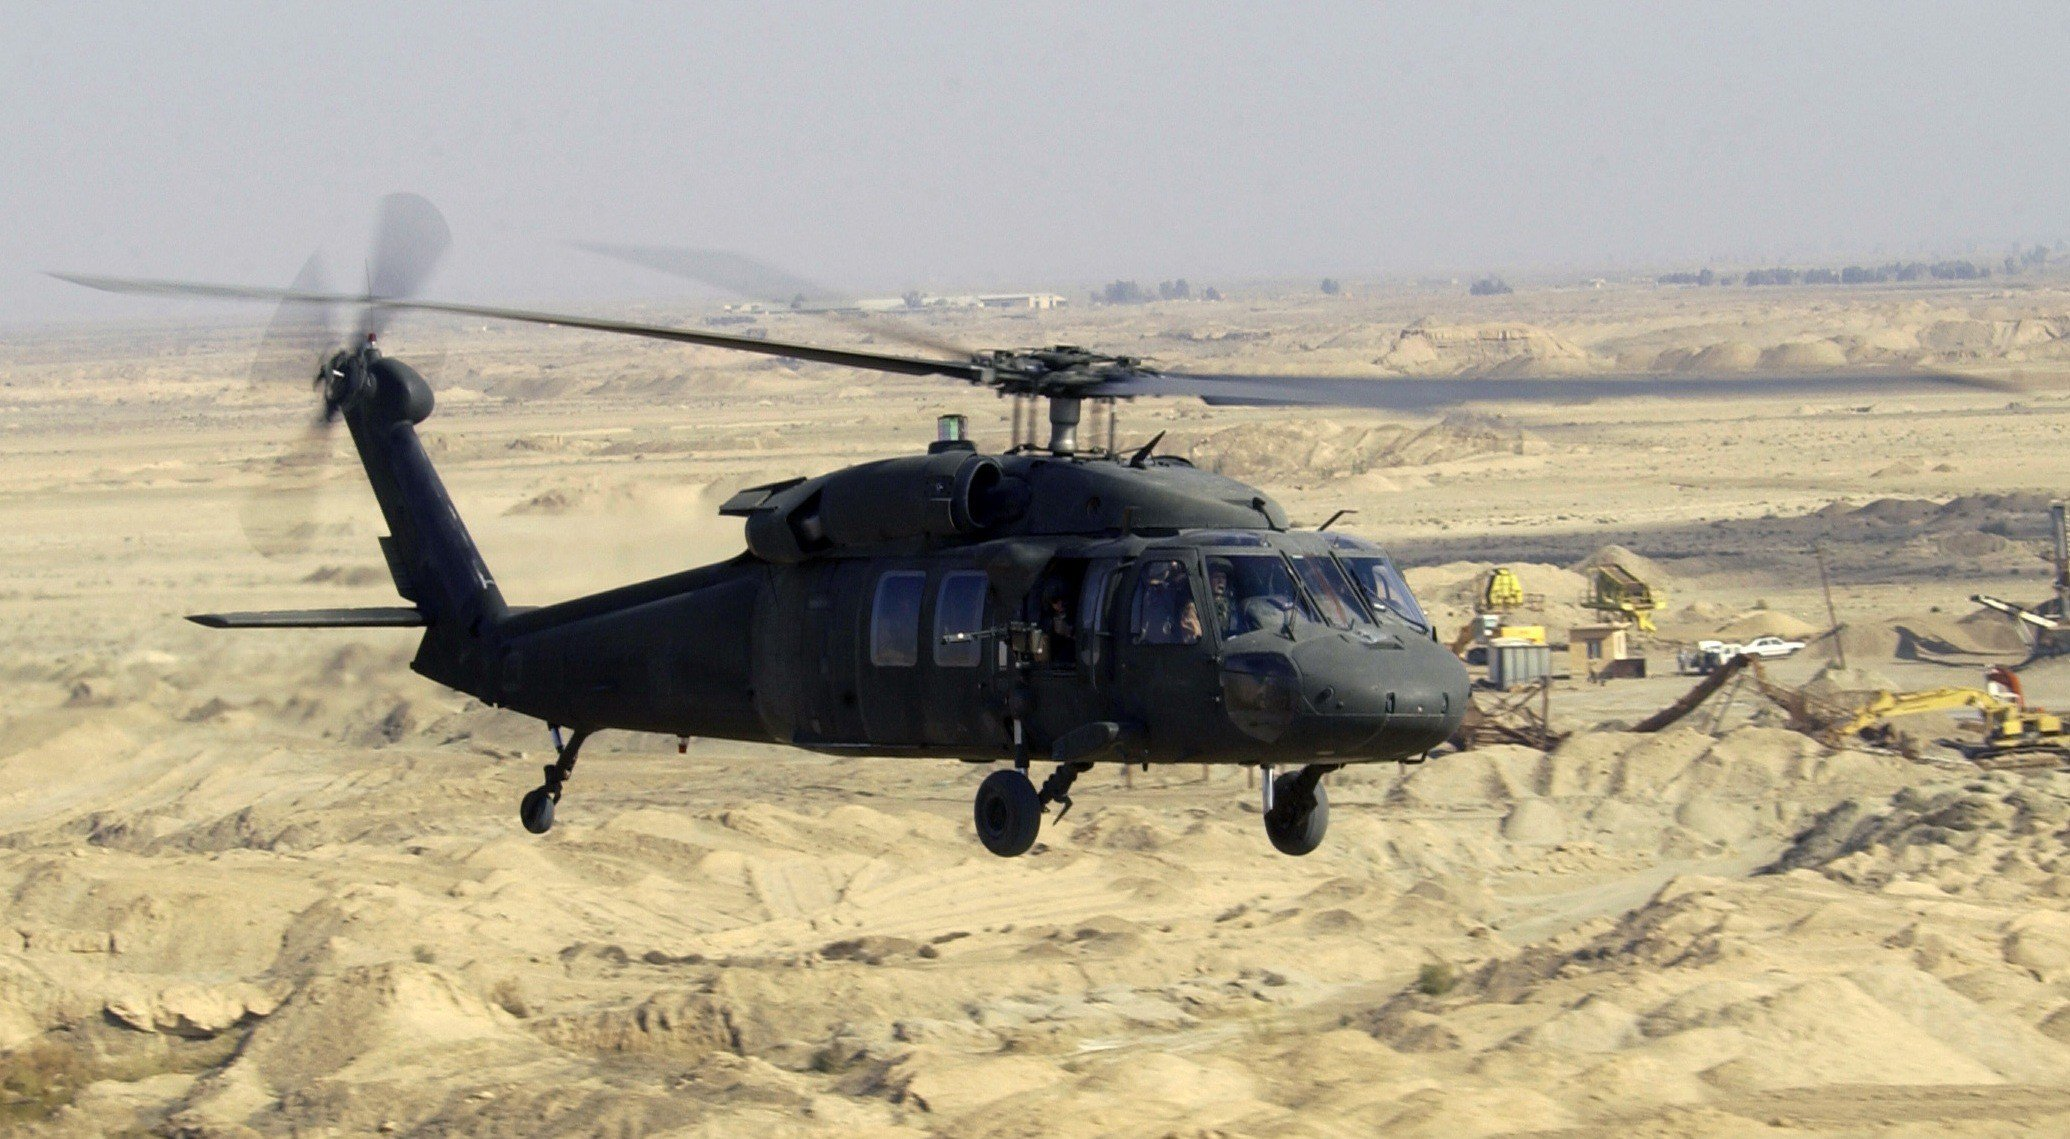 The operation will involve a UH-60 Blackhawk helicopter. (Source: Wikipedia.org)